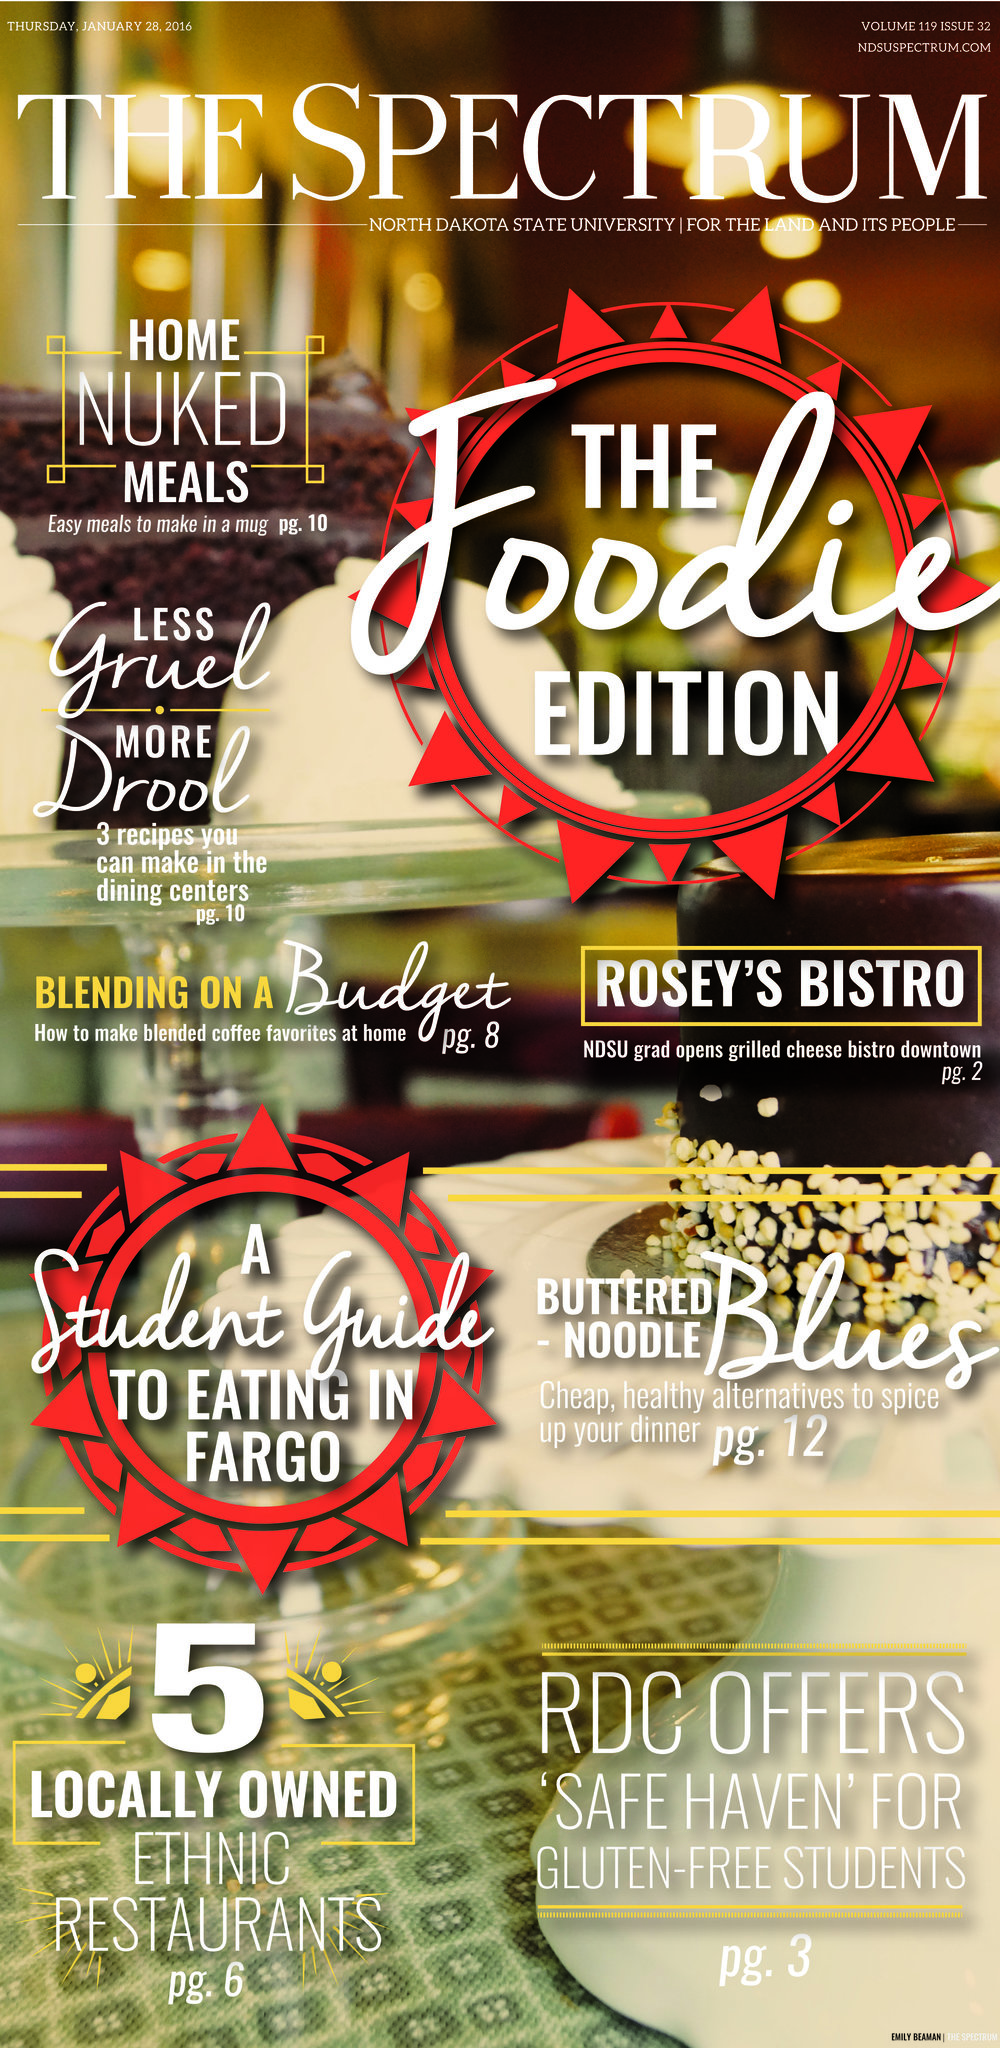 - Front page of our monthly special edition. This issue focused on the local foodie scene in Fargo seen through a college lens.